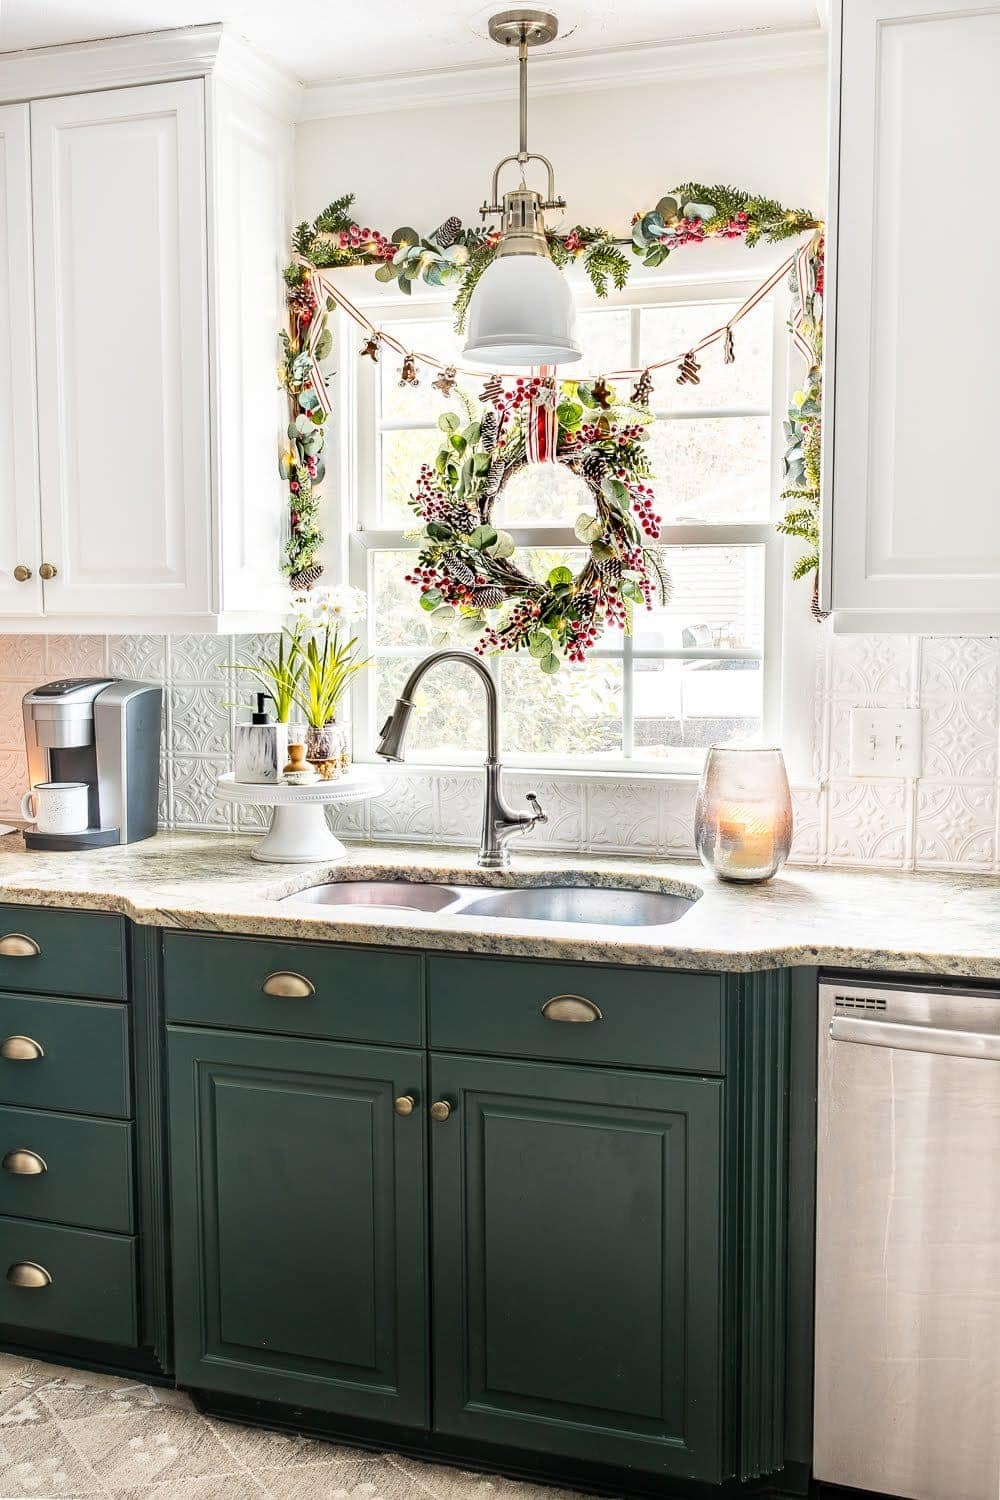 Christmas decor ideas | Hang a wreath and garland on a kitchen window